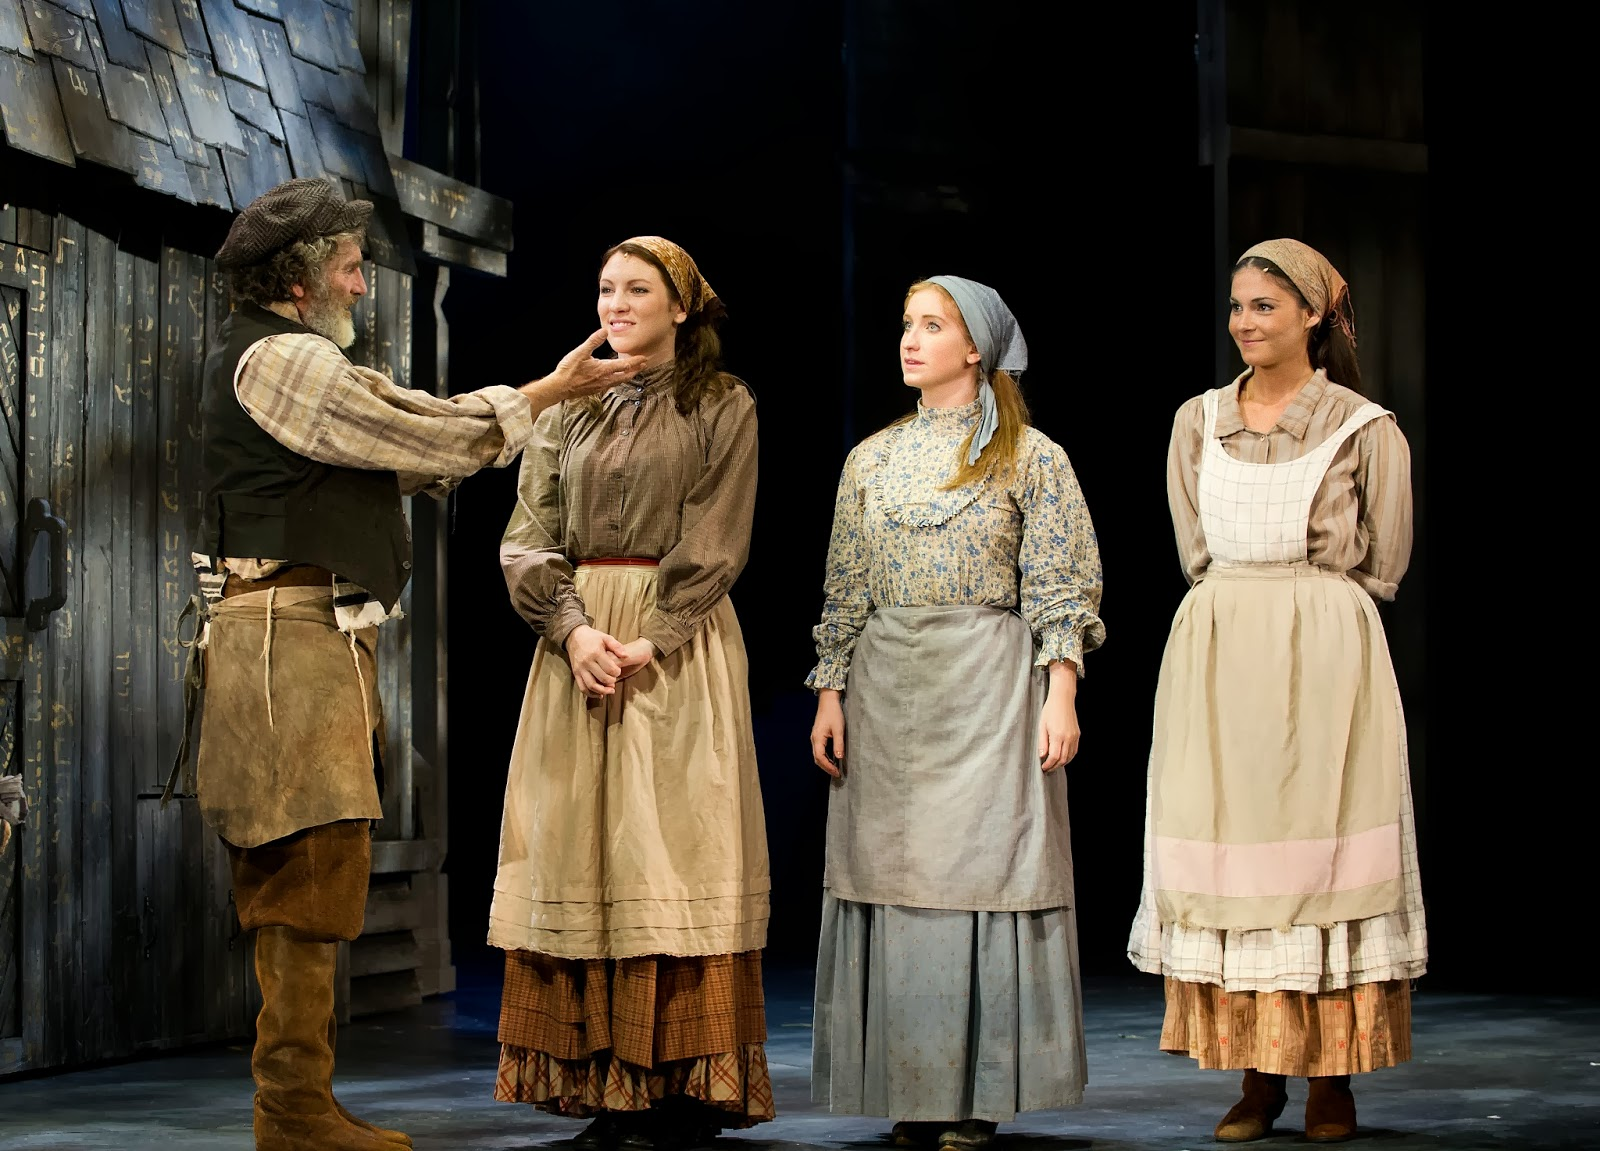 Roofing: Fiddler On The Roof Cast